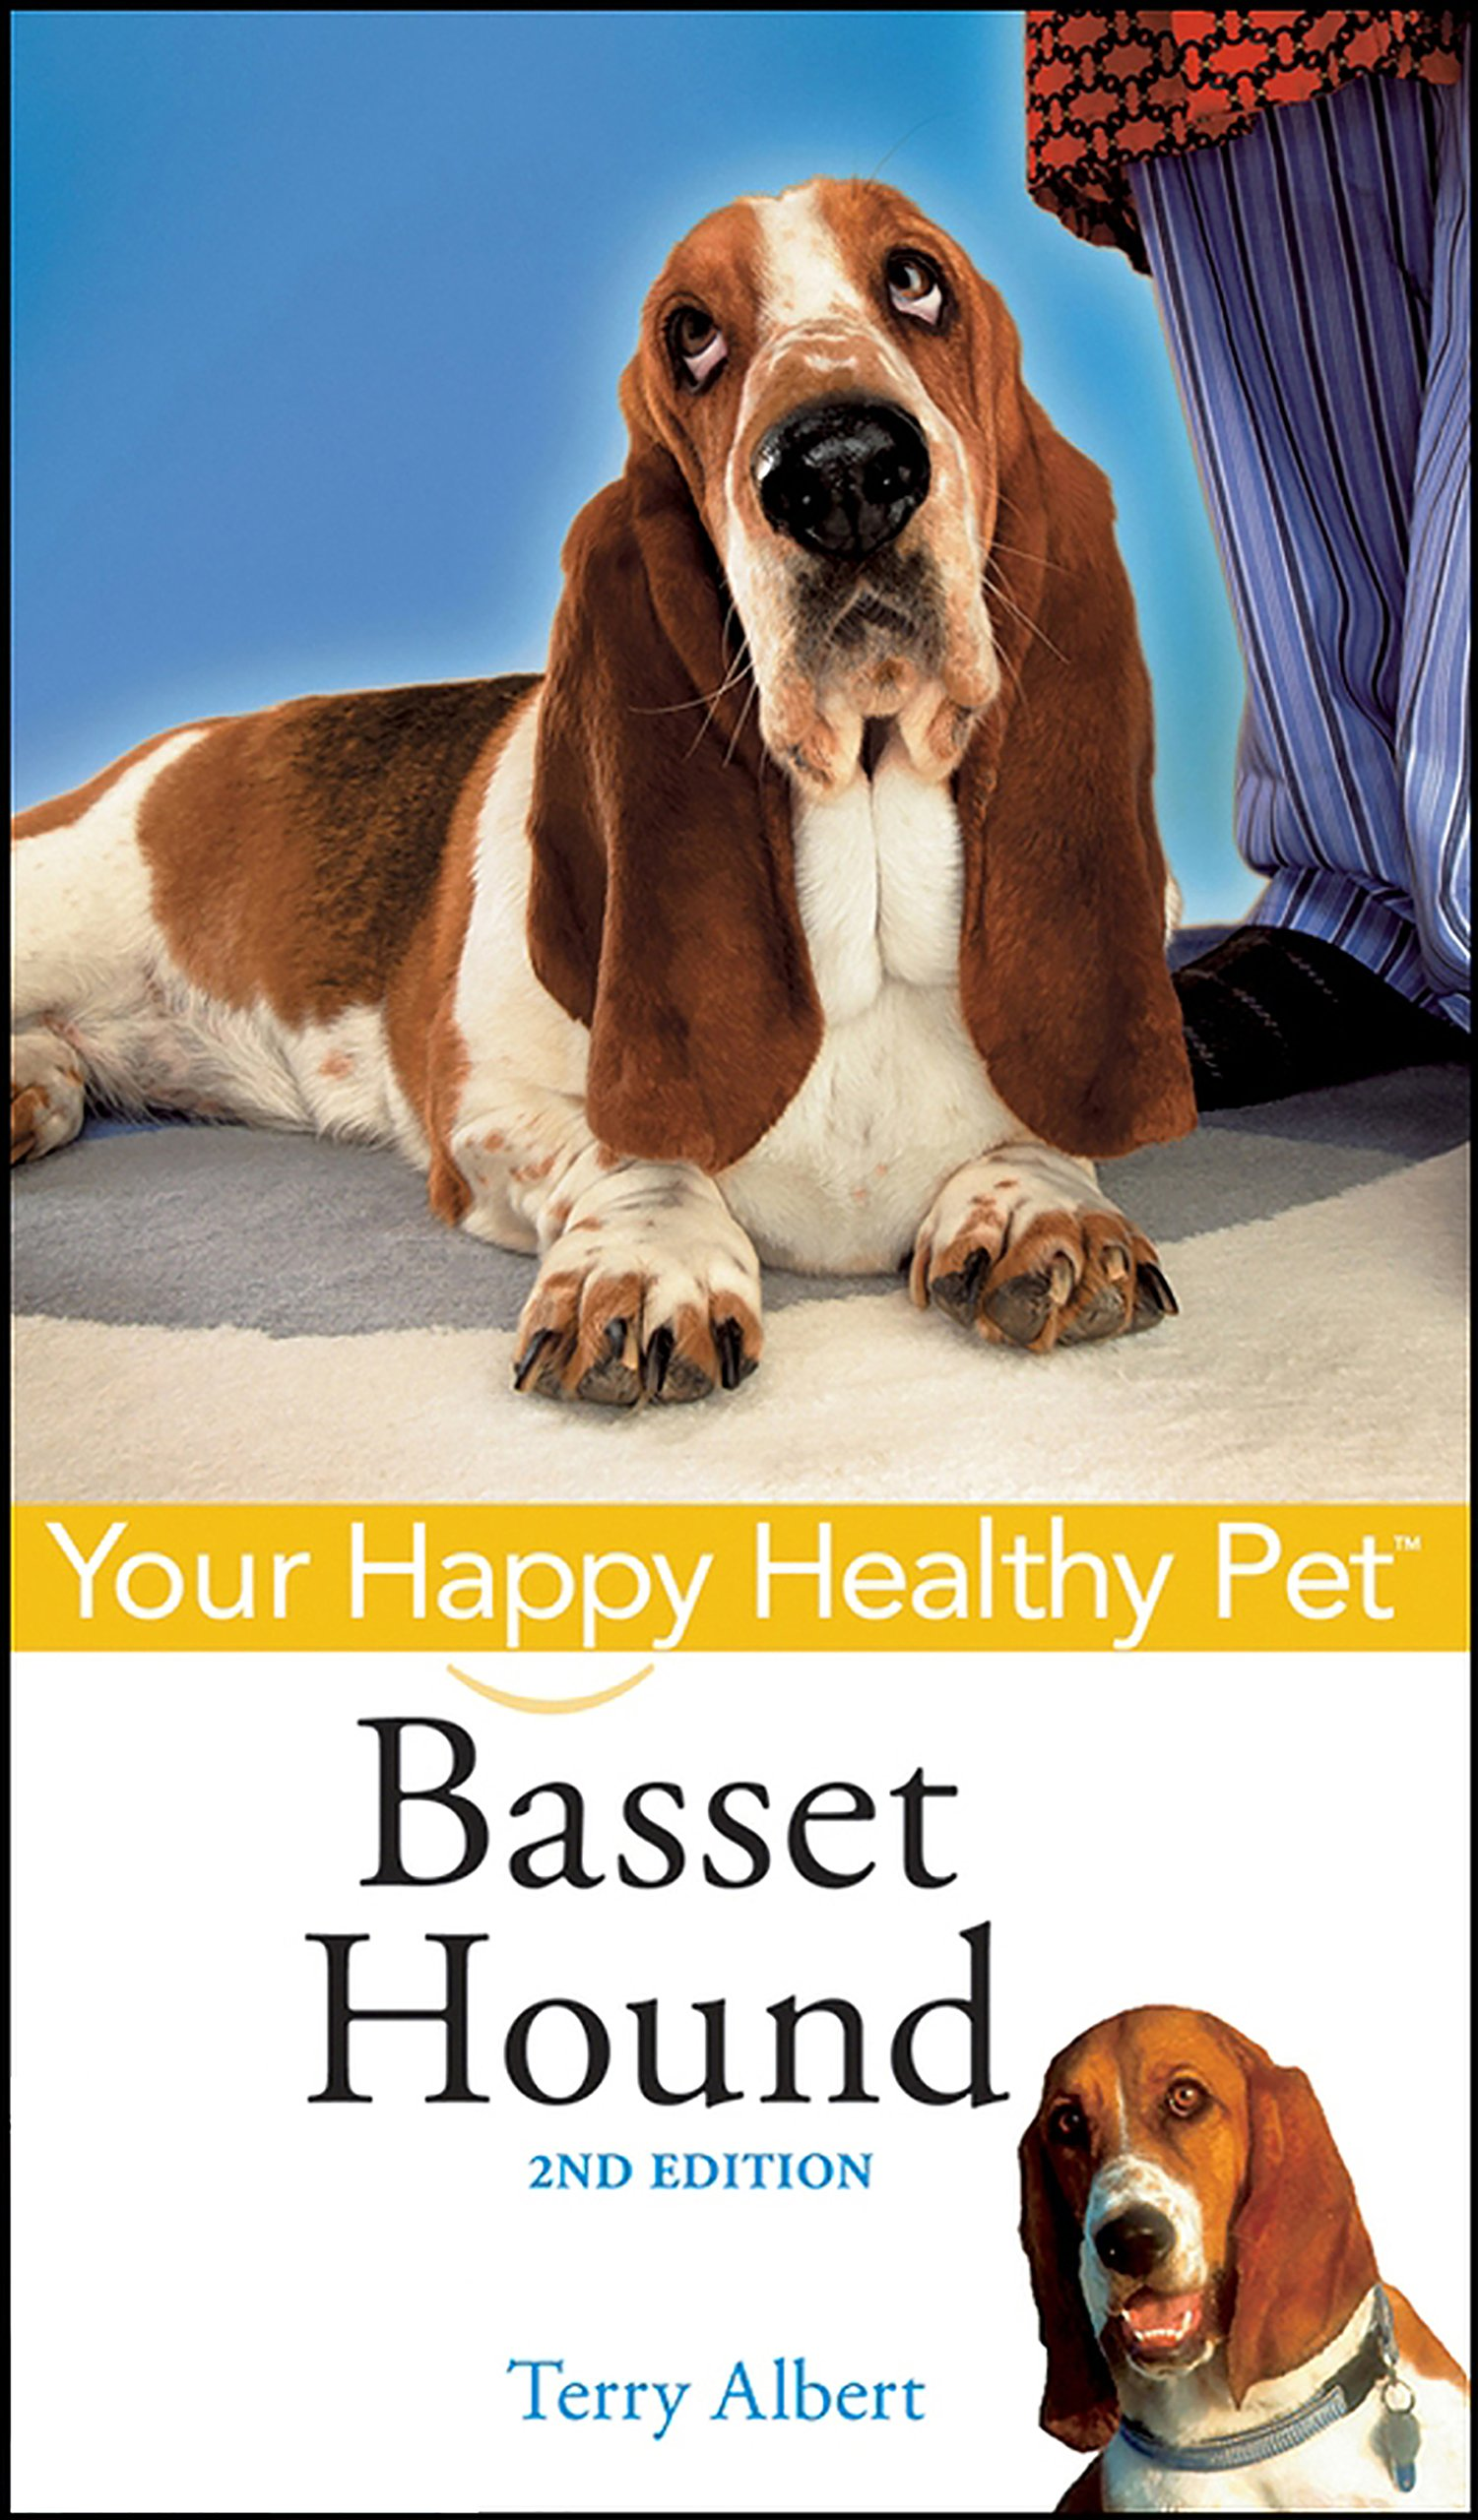 Basset hound your happy healthy pet terry albert 9780470390566 basset hound your happy healthy pet terry albert 9780470390566 amazon books fandeluxe Gallery